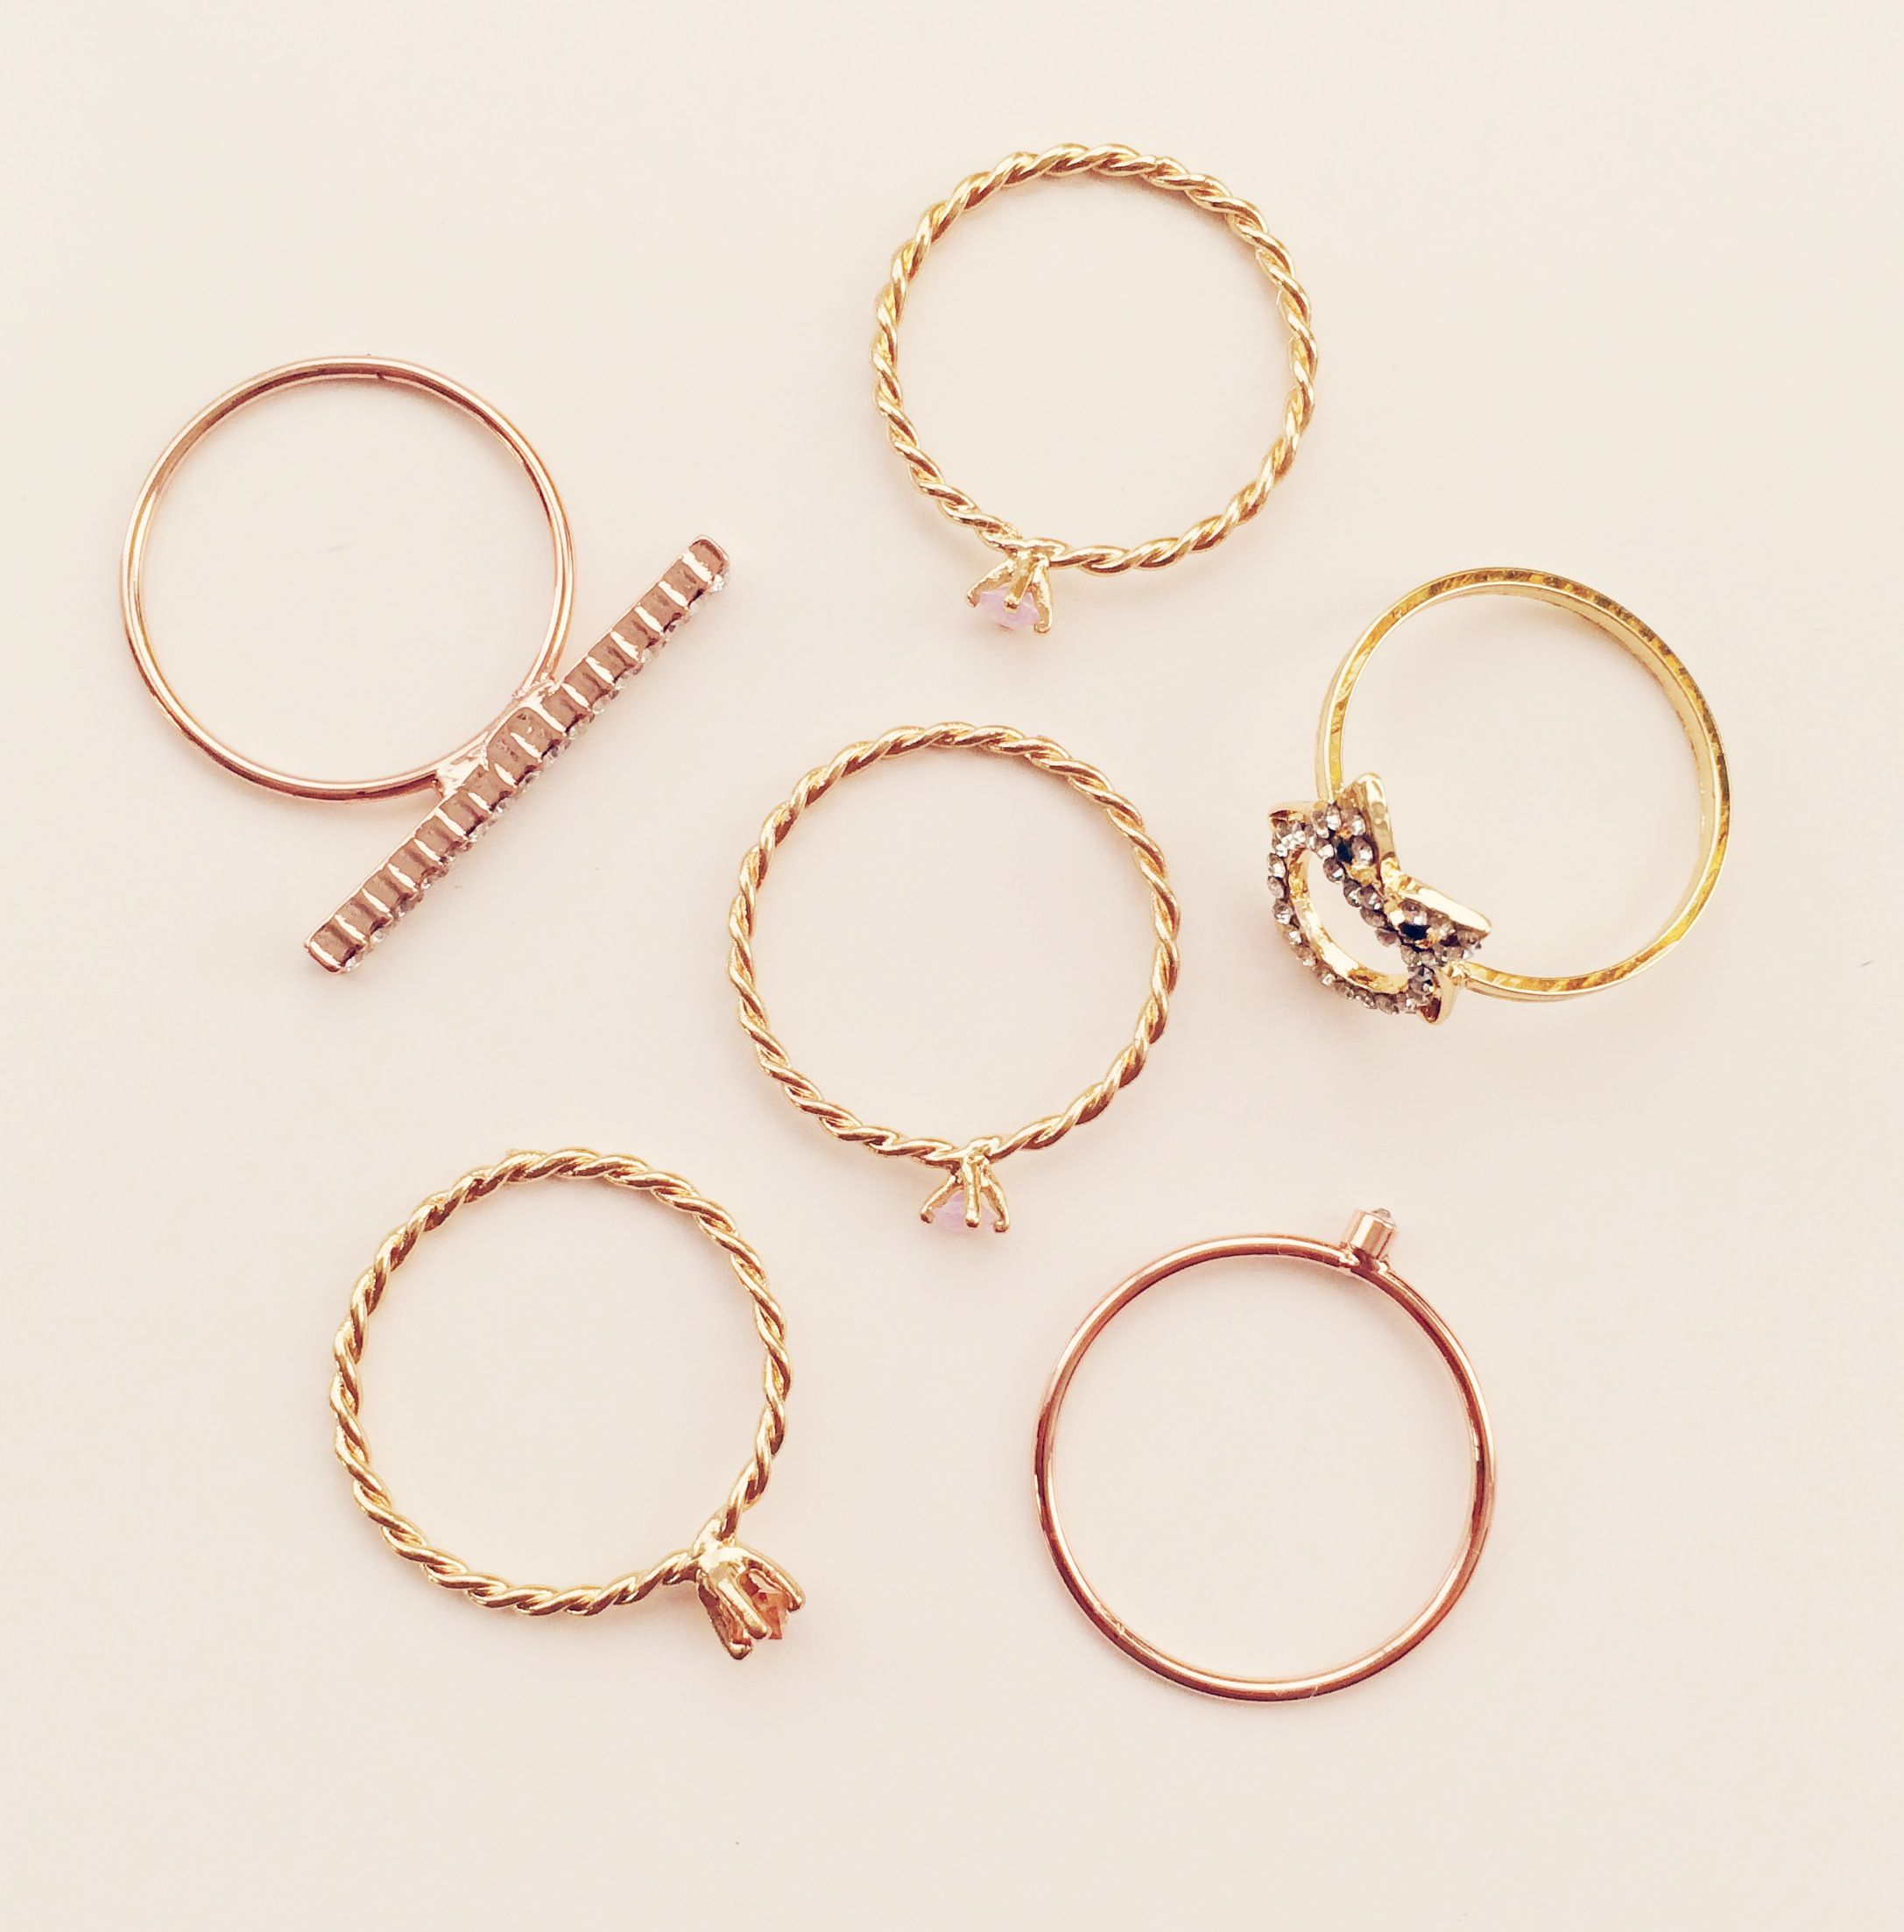 Kohls Jewelry Box Unique Lc Lauren Conrad For Kohl's Stackable Rings $780  My Style And Inspiration